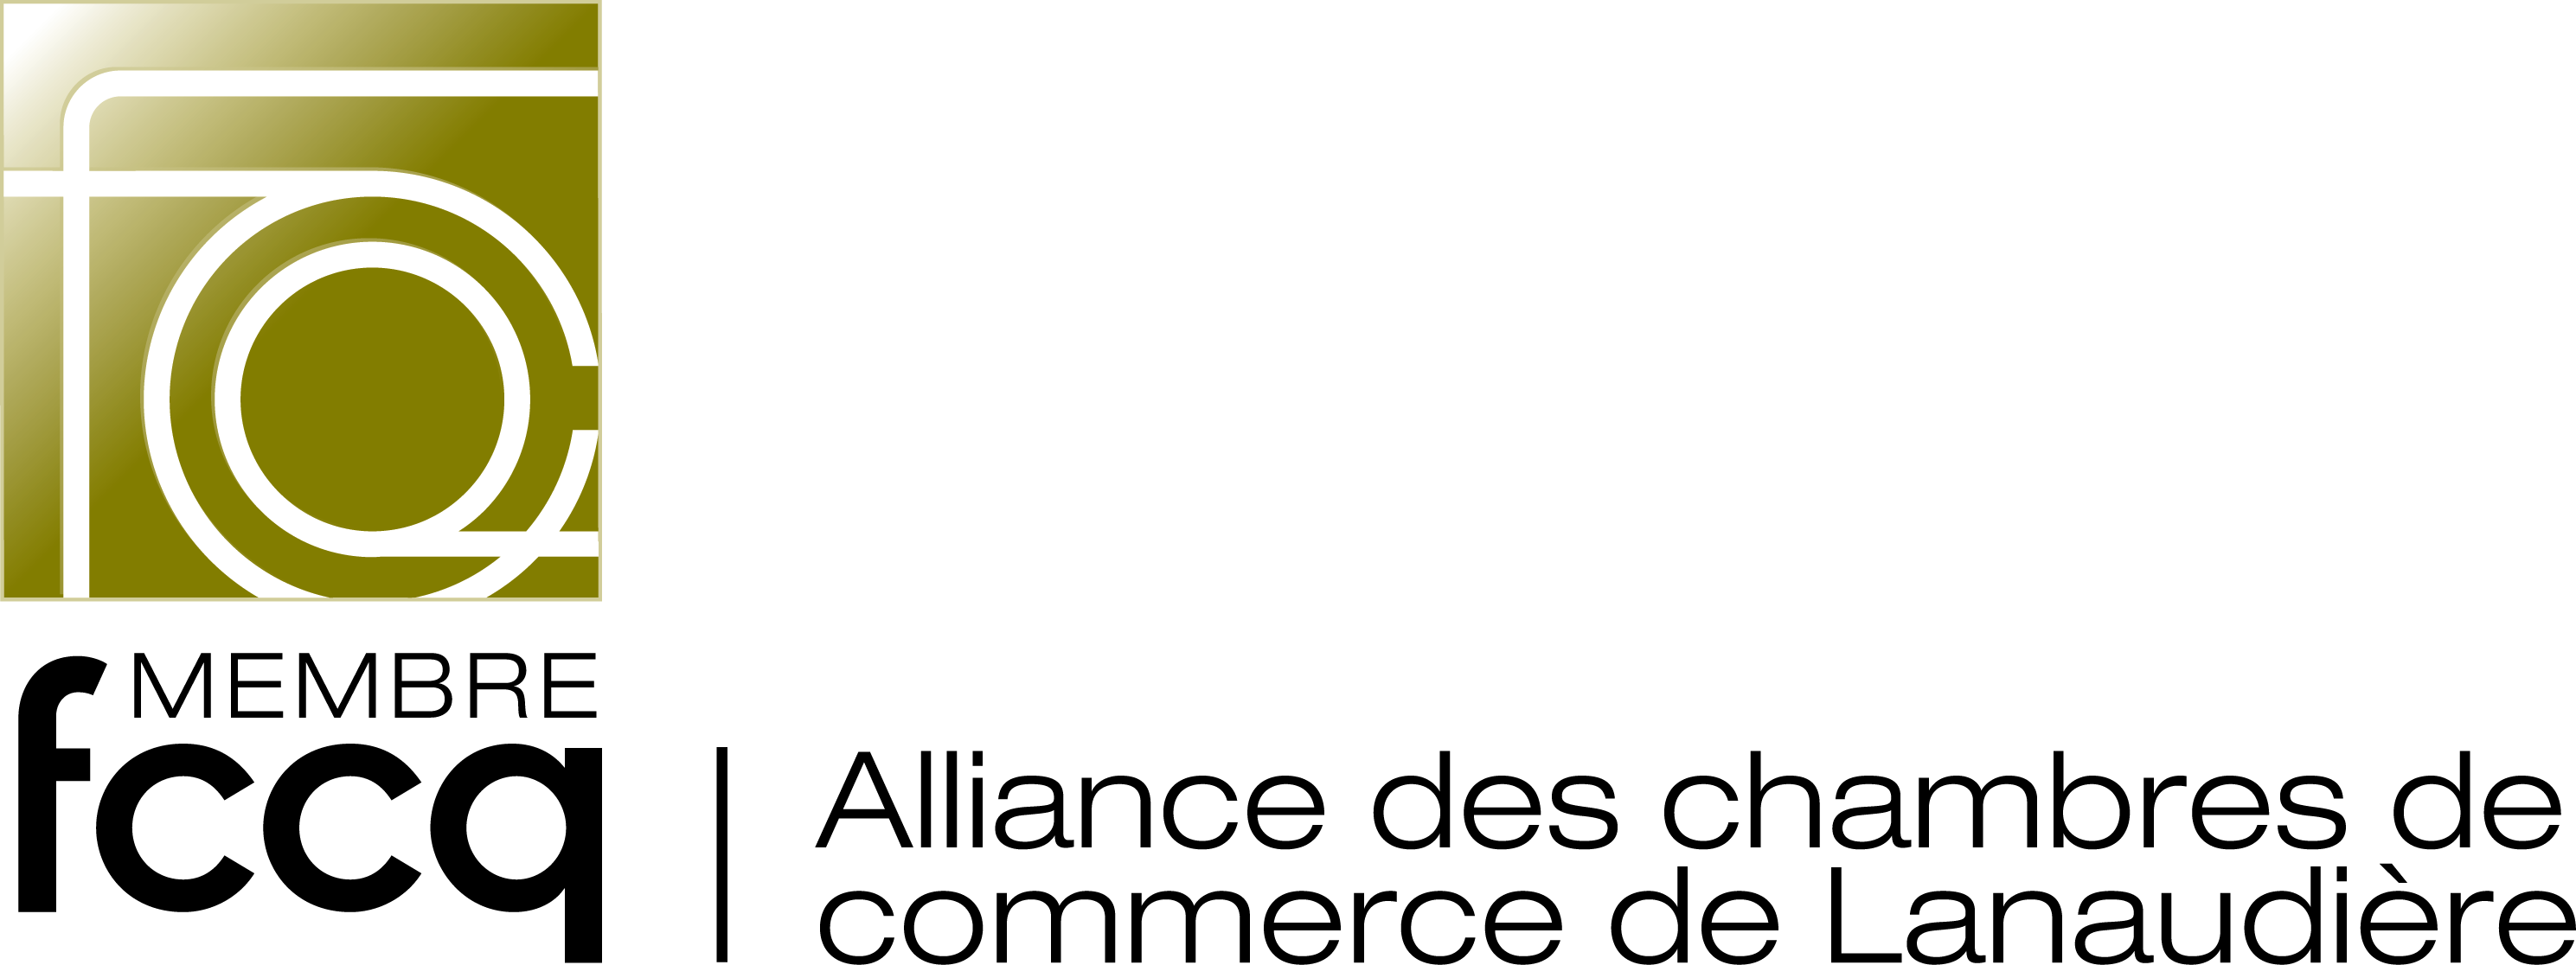 Alliance des chambres de commerce de lanaudi re chambre for Chambre de commerce de maniwaki